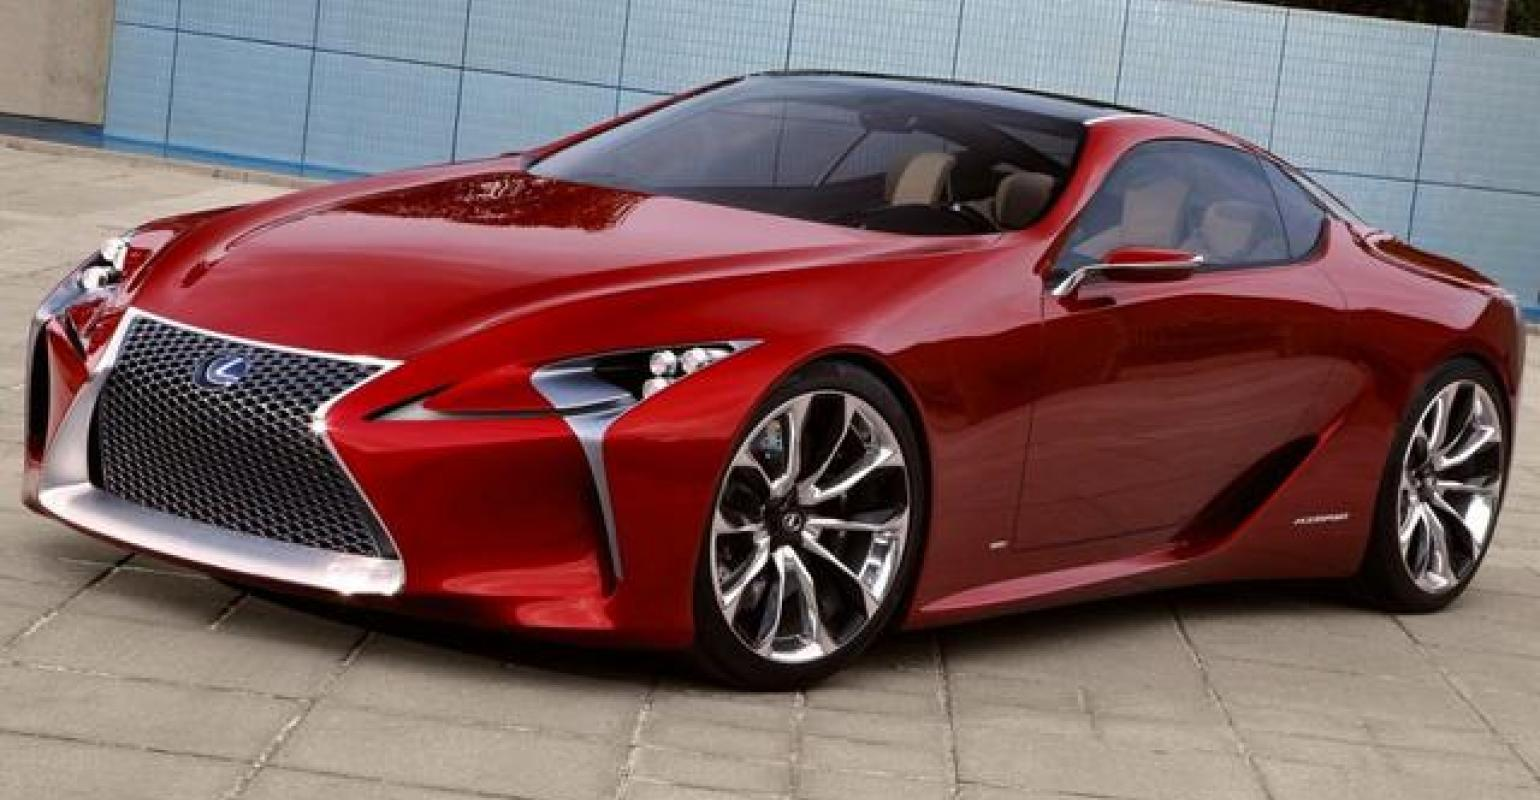 Lexus Lf Lc Hybrid Sport Coupe Refreshed Lx Suv Unveiled In Detroit